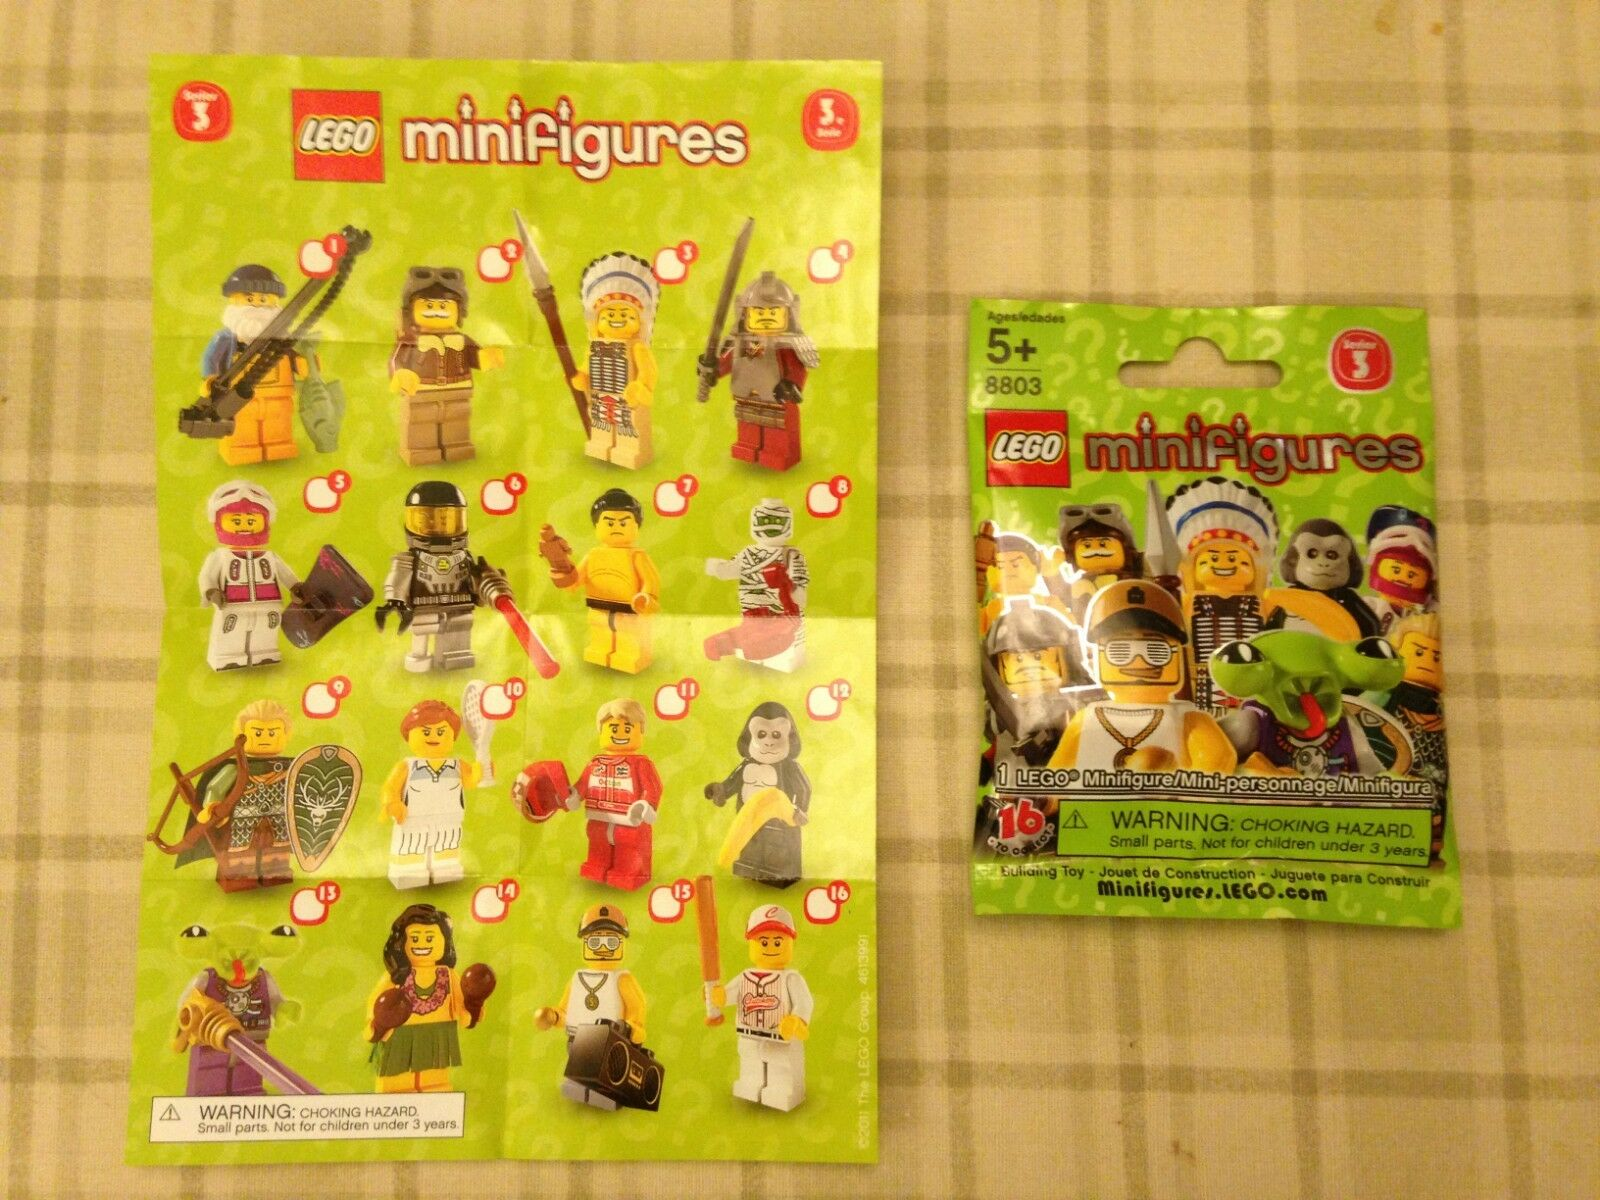 NEW LEGO SERIES 3 POLYBAG MINIFIGURE 8803-15 RAPPER IN POLYBAG 3 a4d9bd